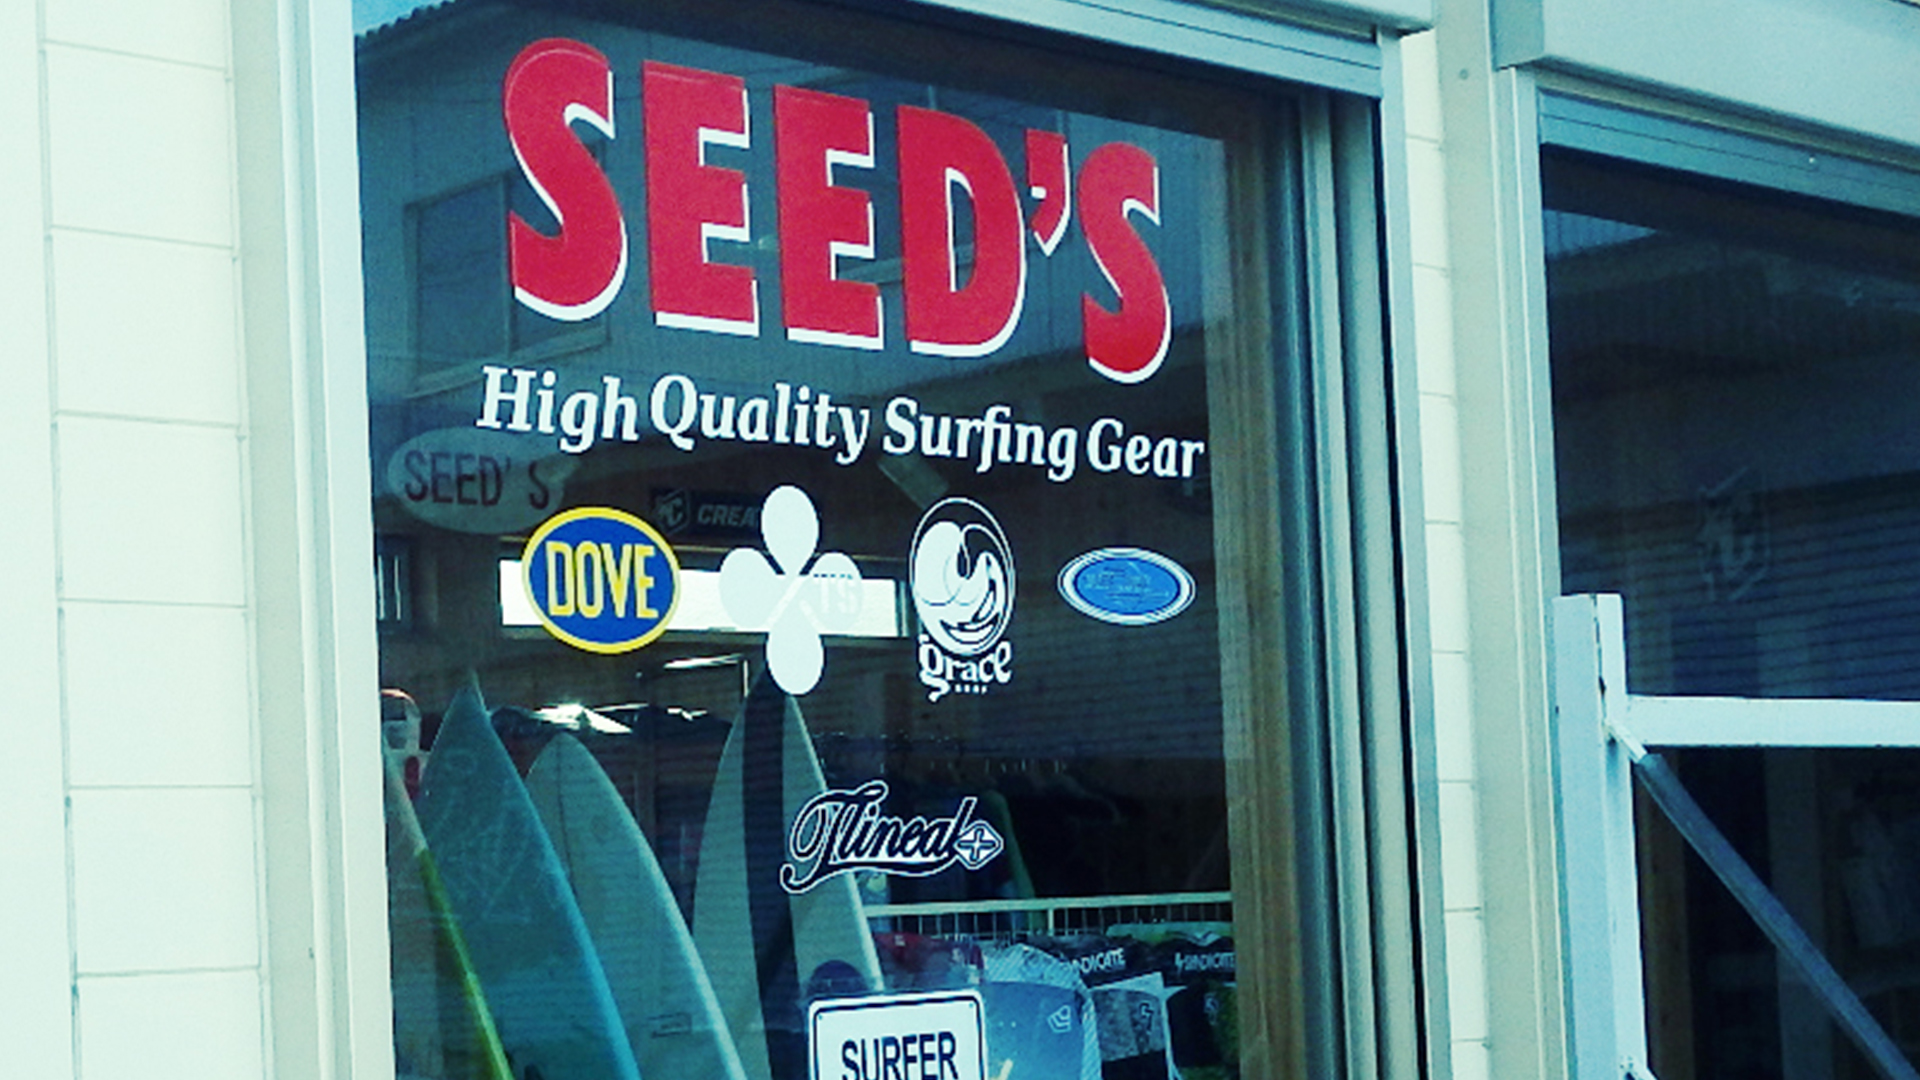 SEED'S